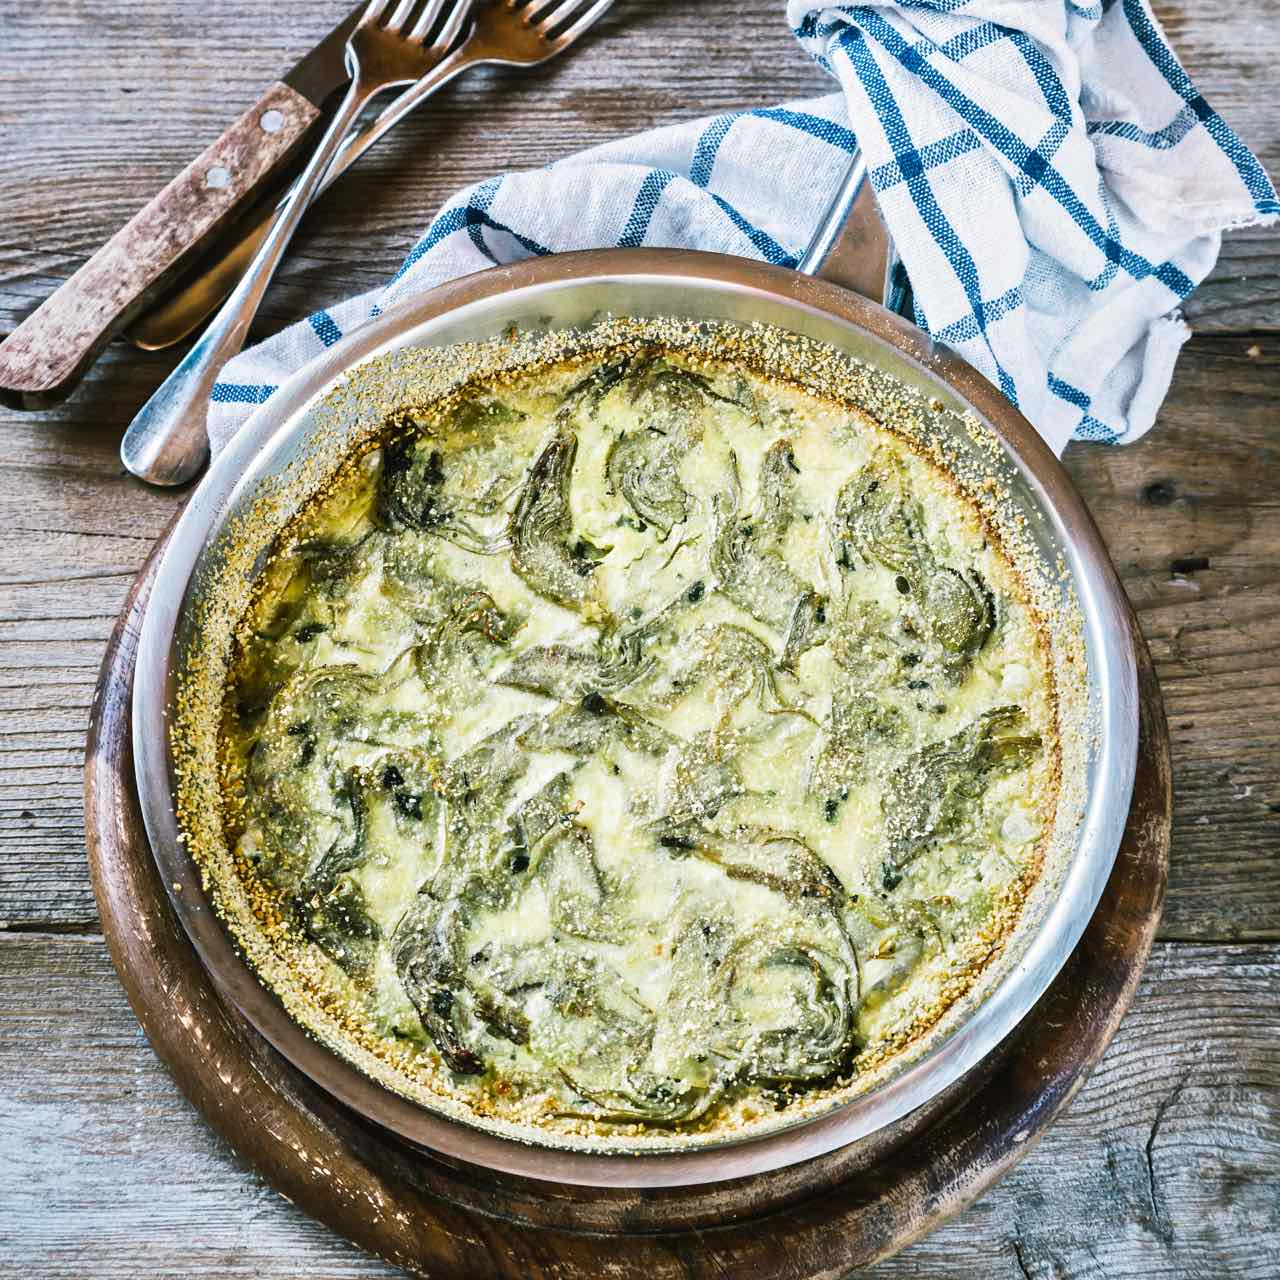 clafoutis with artichoke - clafoutis recipe - - clafoutis ai carciofi - clafoutis - ricetta clafoutis - - opsd blog - sonia monagheddu - food styling - food photography